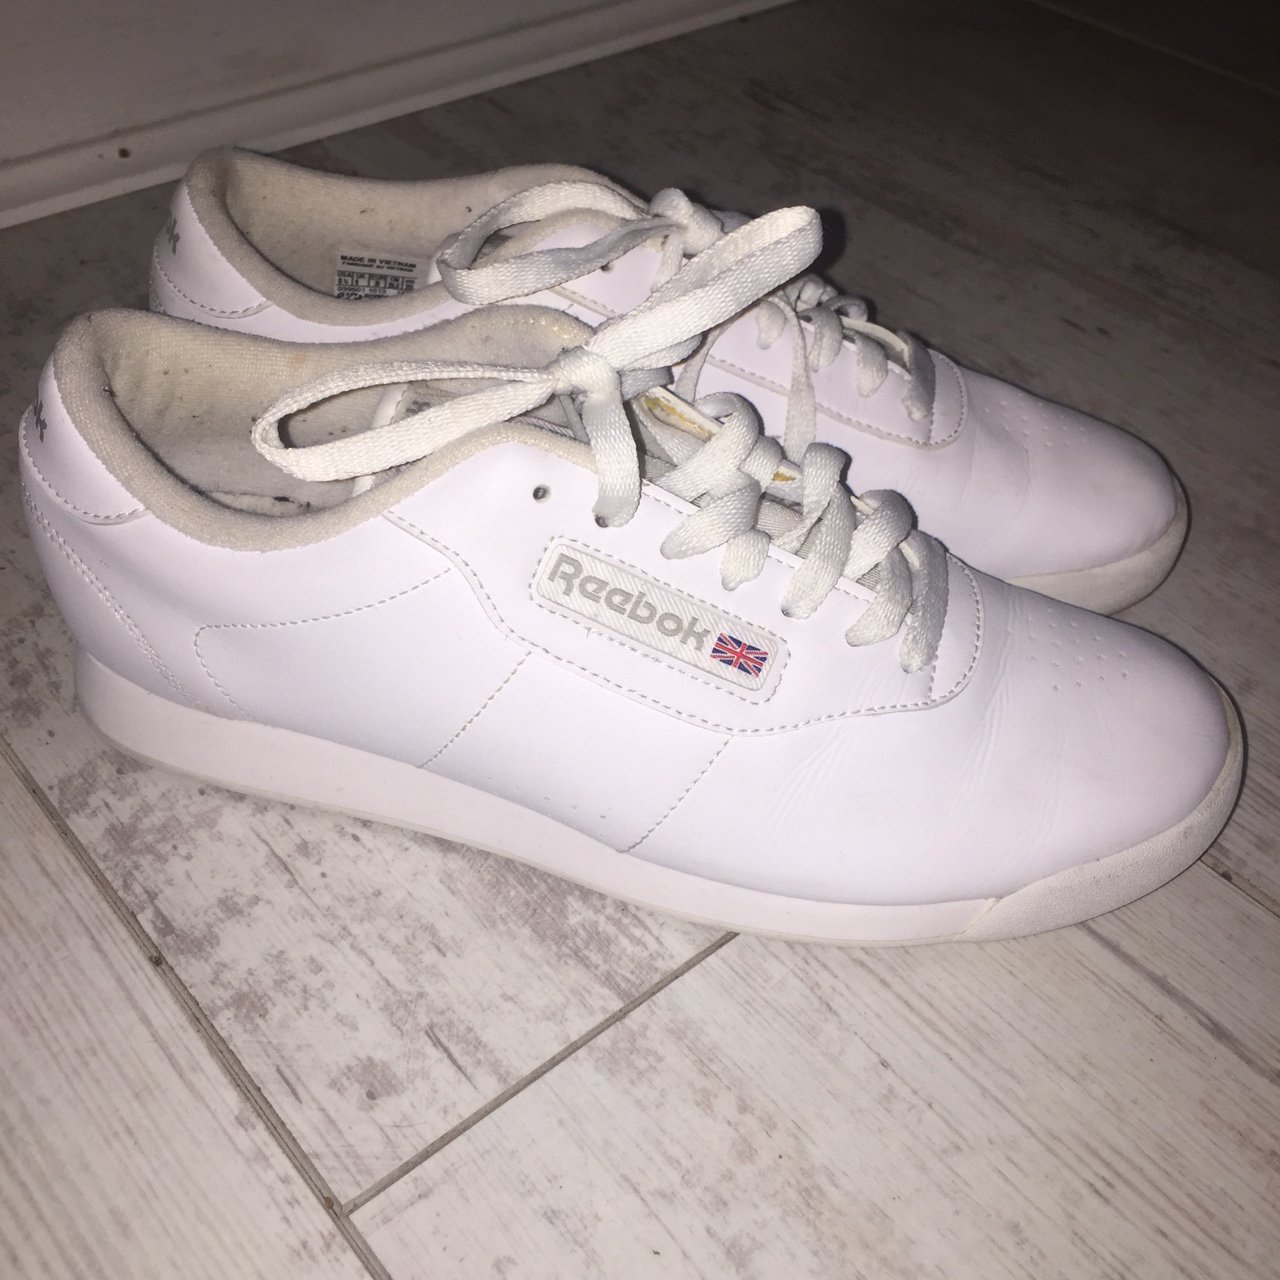 47bd30e1732 Reebok runners size 6 in prefect condition price includes - Depop